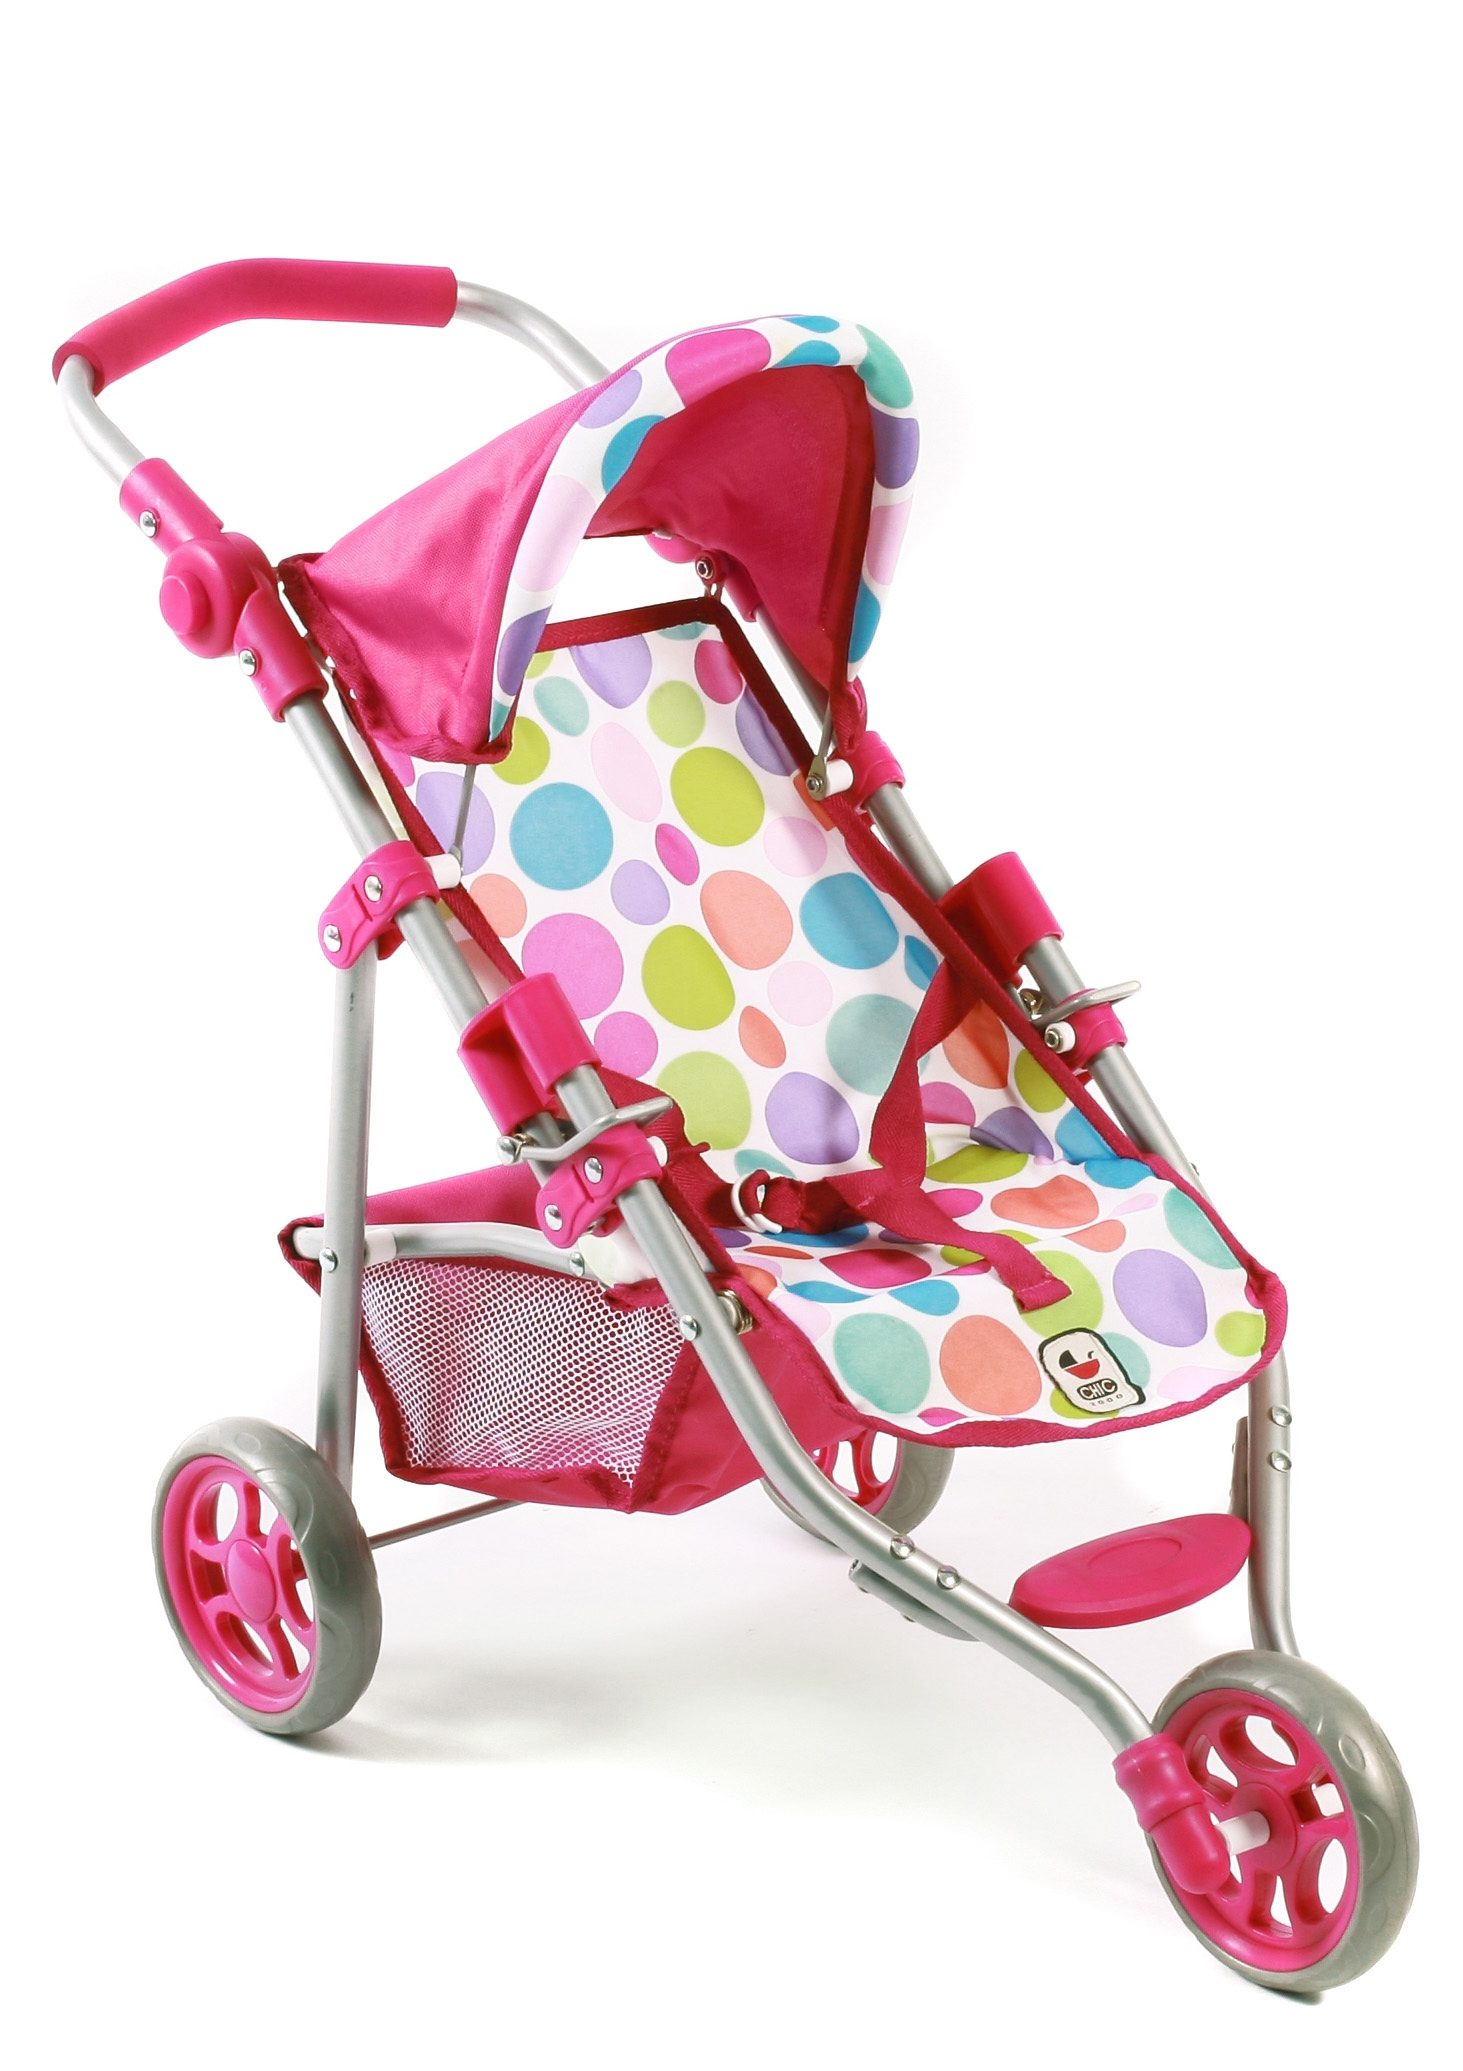 CHIC2000 Puppen-Jogging-Buggy, »Lola, Pinky Bubbles«